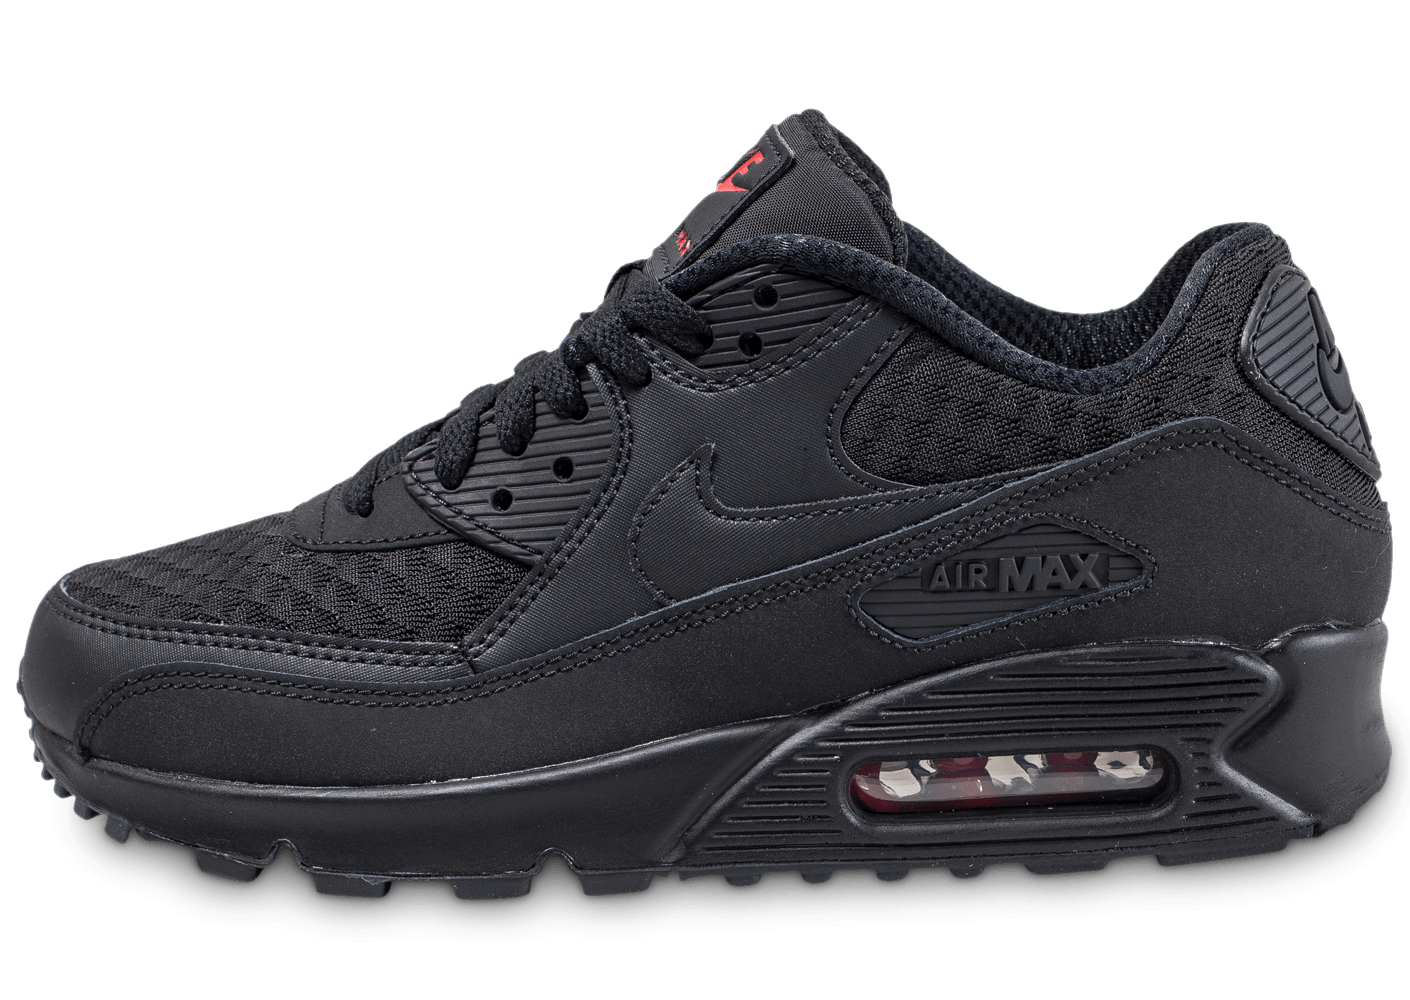 best loved 7678b c3f95 Nike Air Max 90 Essential Ninja Pack noire - Chaussures Baskets homme -  Chausport